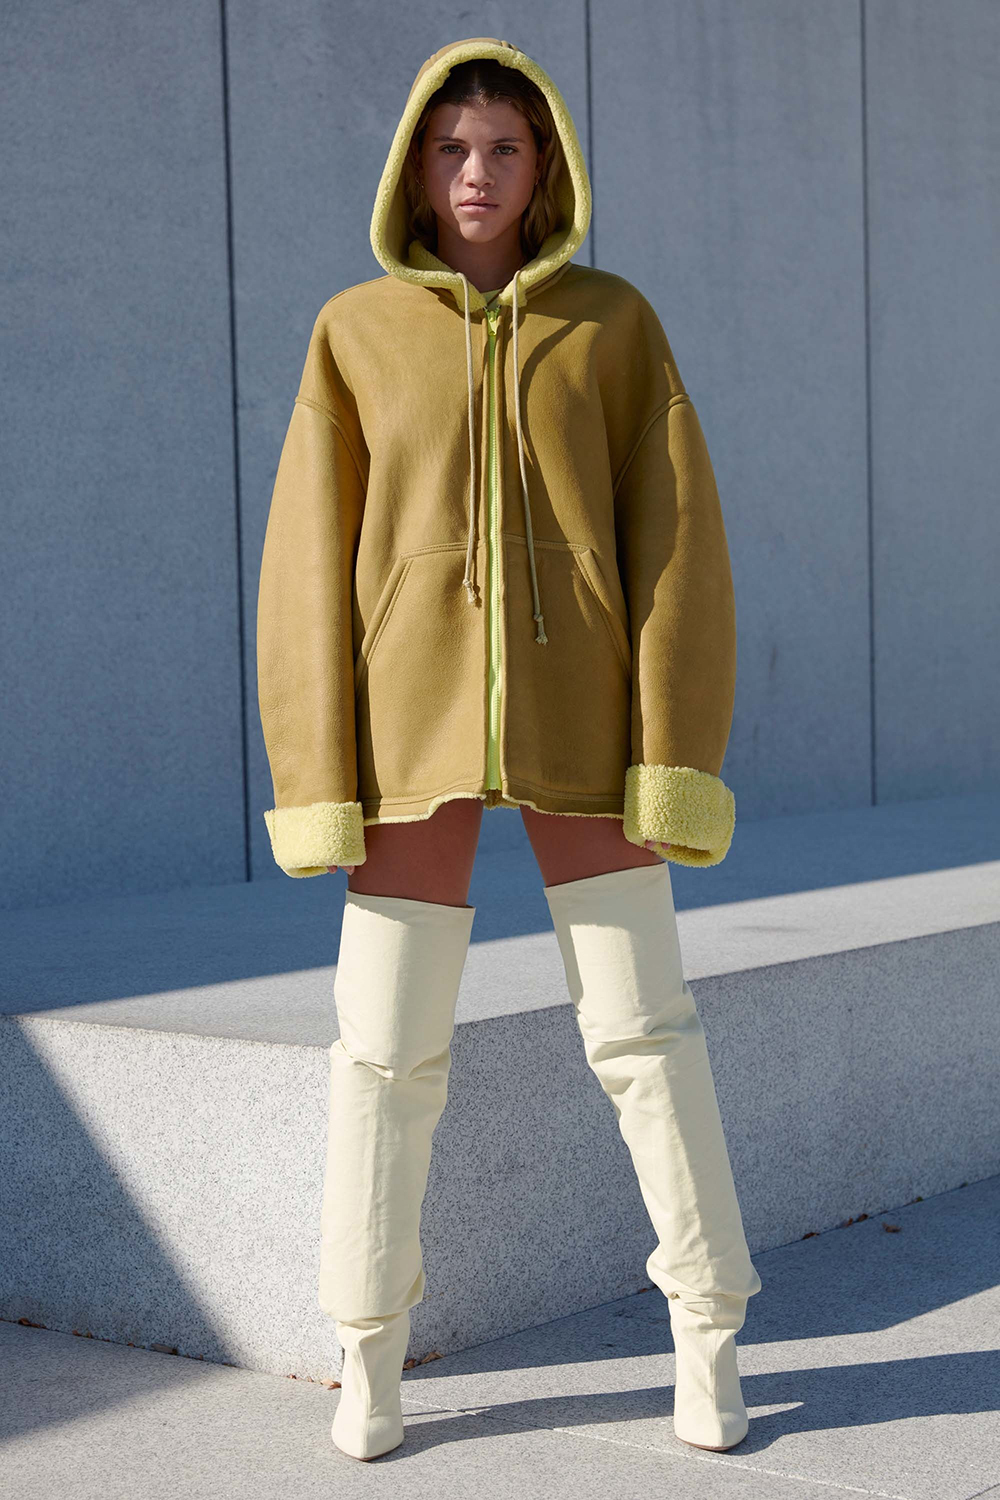 Spring 2017 Ready-To-Wear, Yeezy Season 4